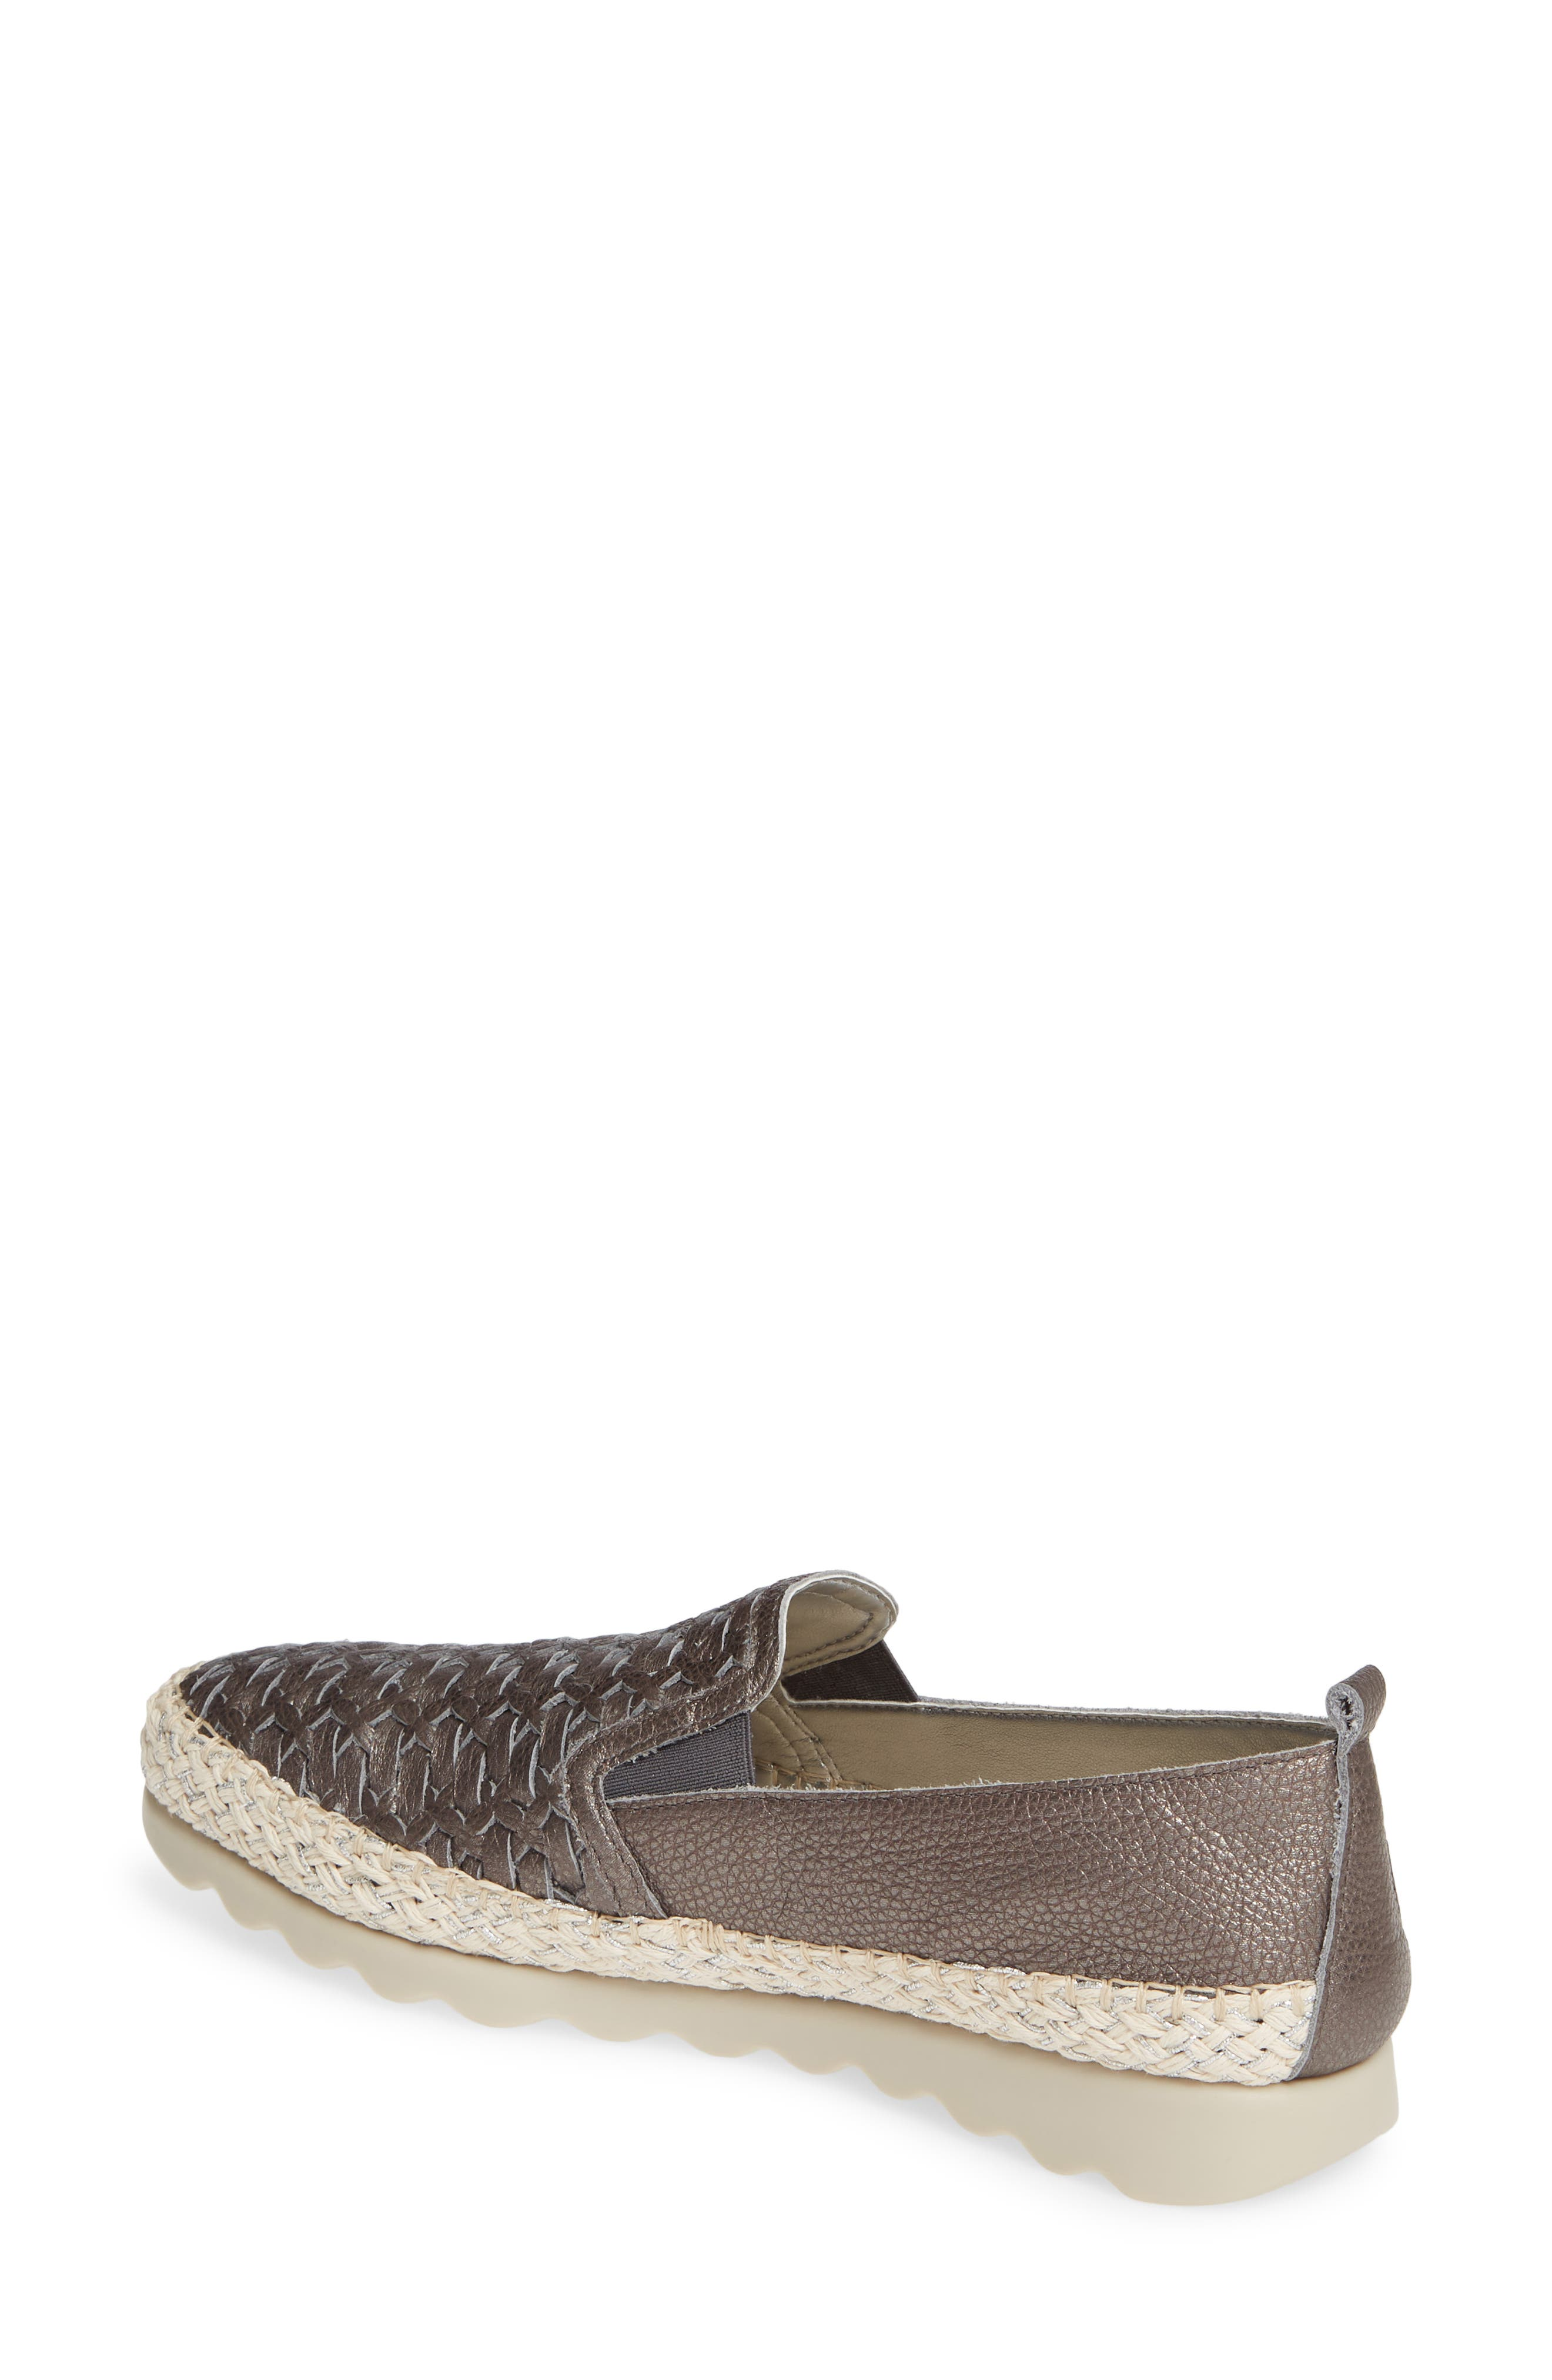 Chapter Woven Slip-On Sneaker,                             Alternate thumbnail 2, color,                             CANNA DI FUCILE CURTIS LEATHER